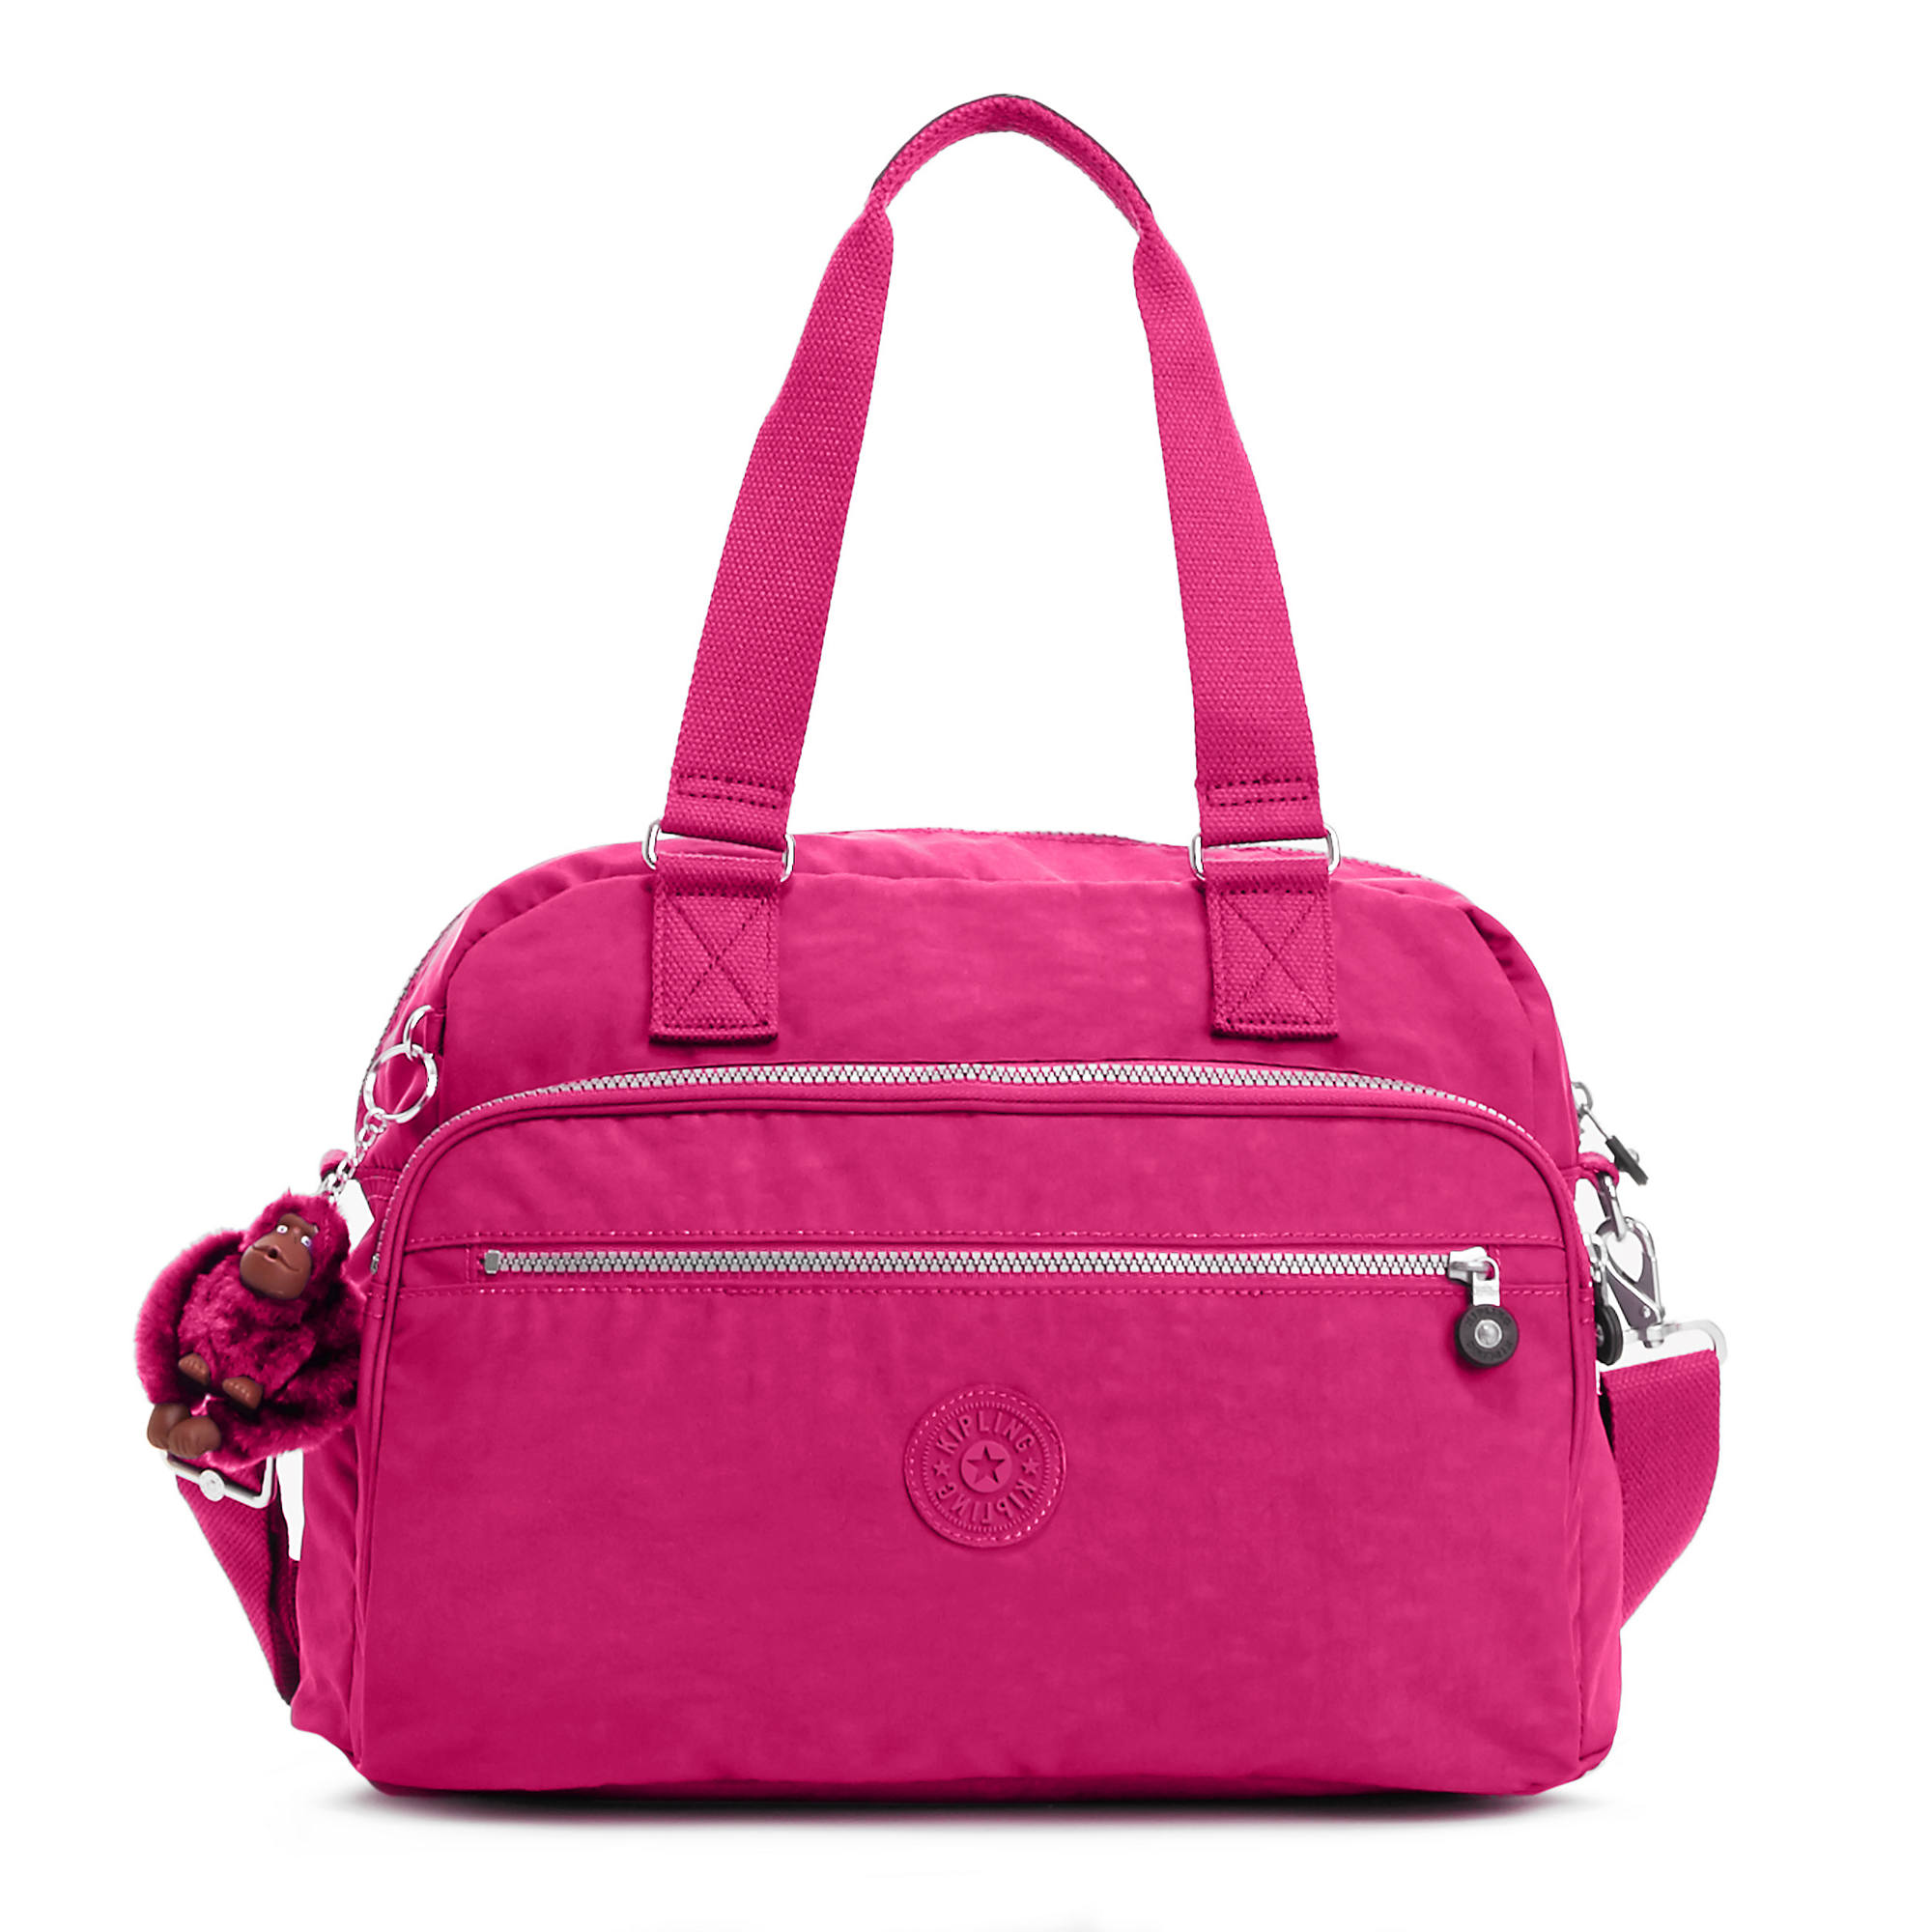 new weekend travel bag undefined - Travel Tote Bags